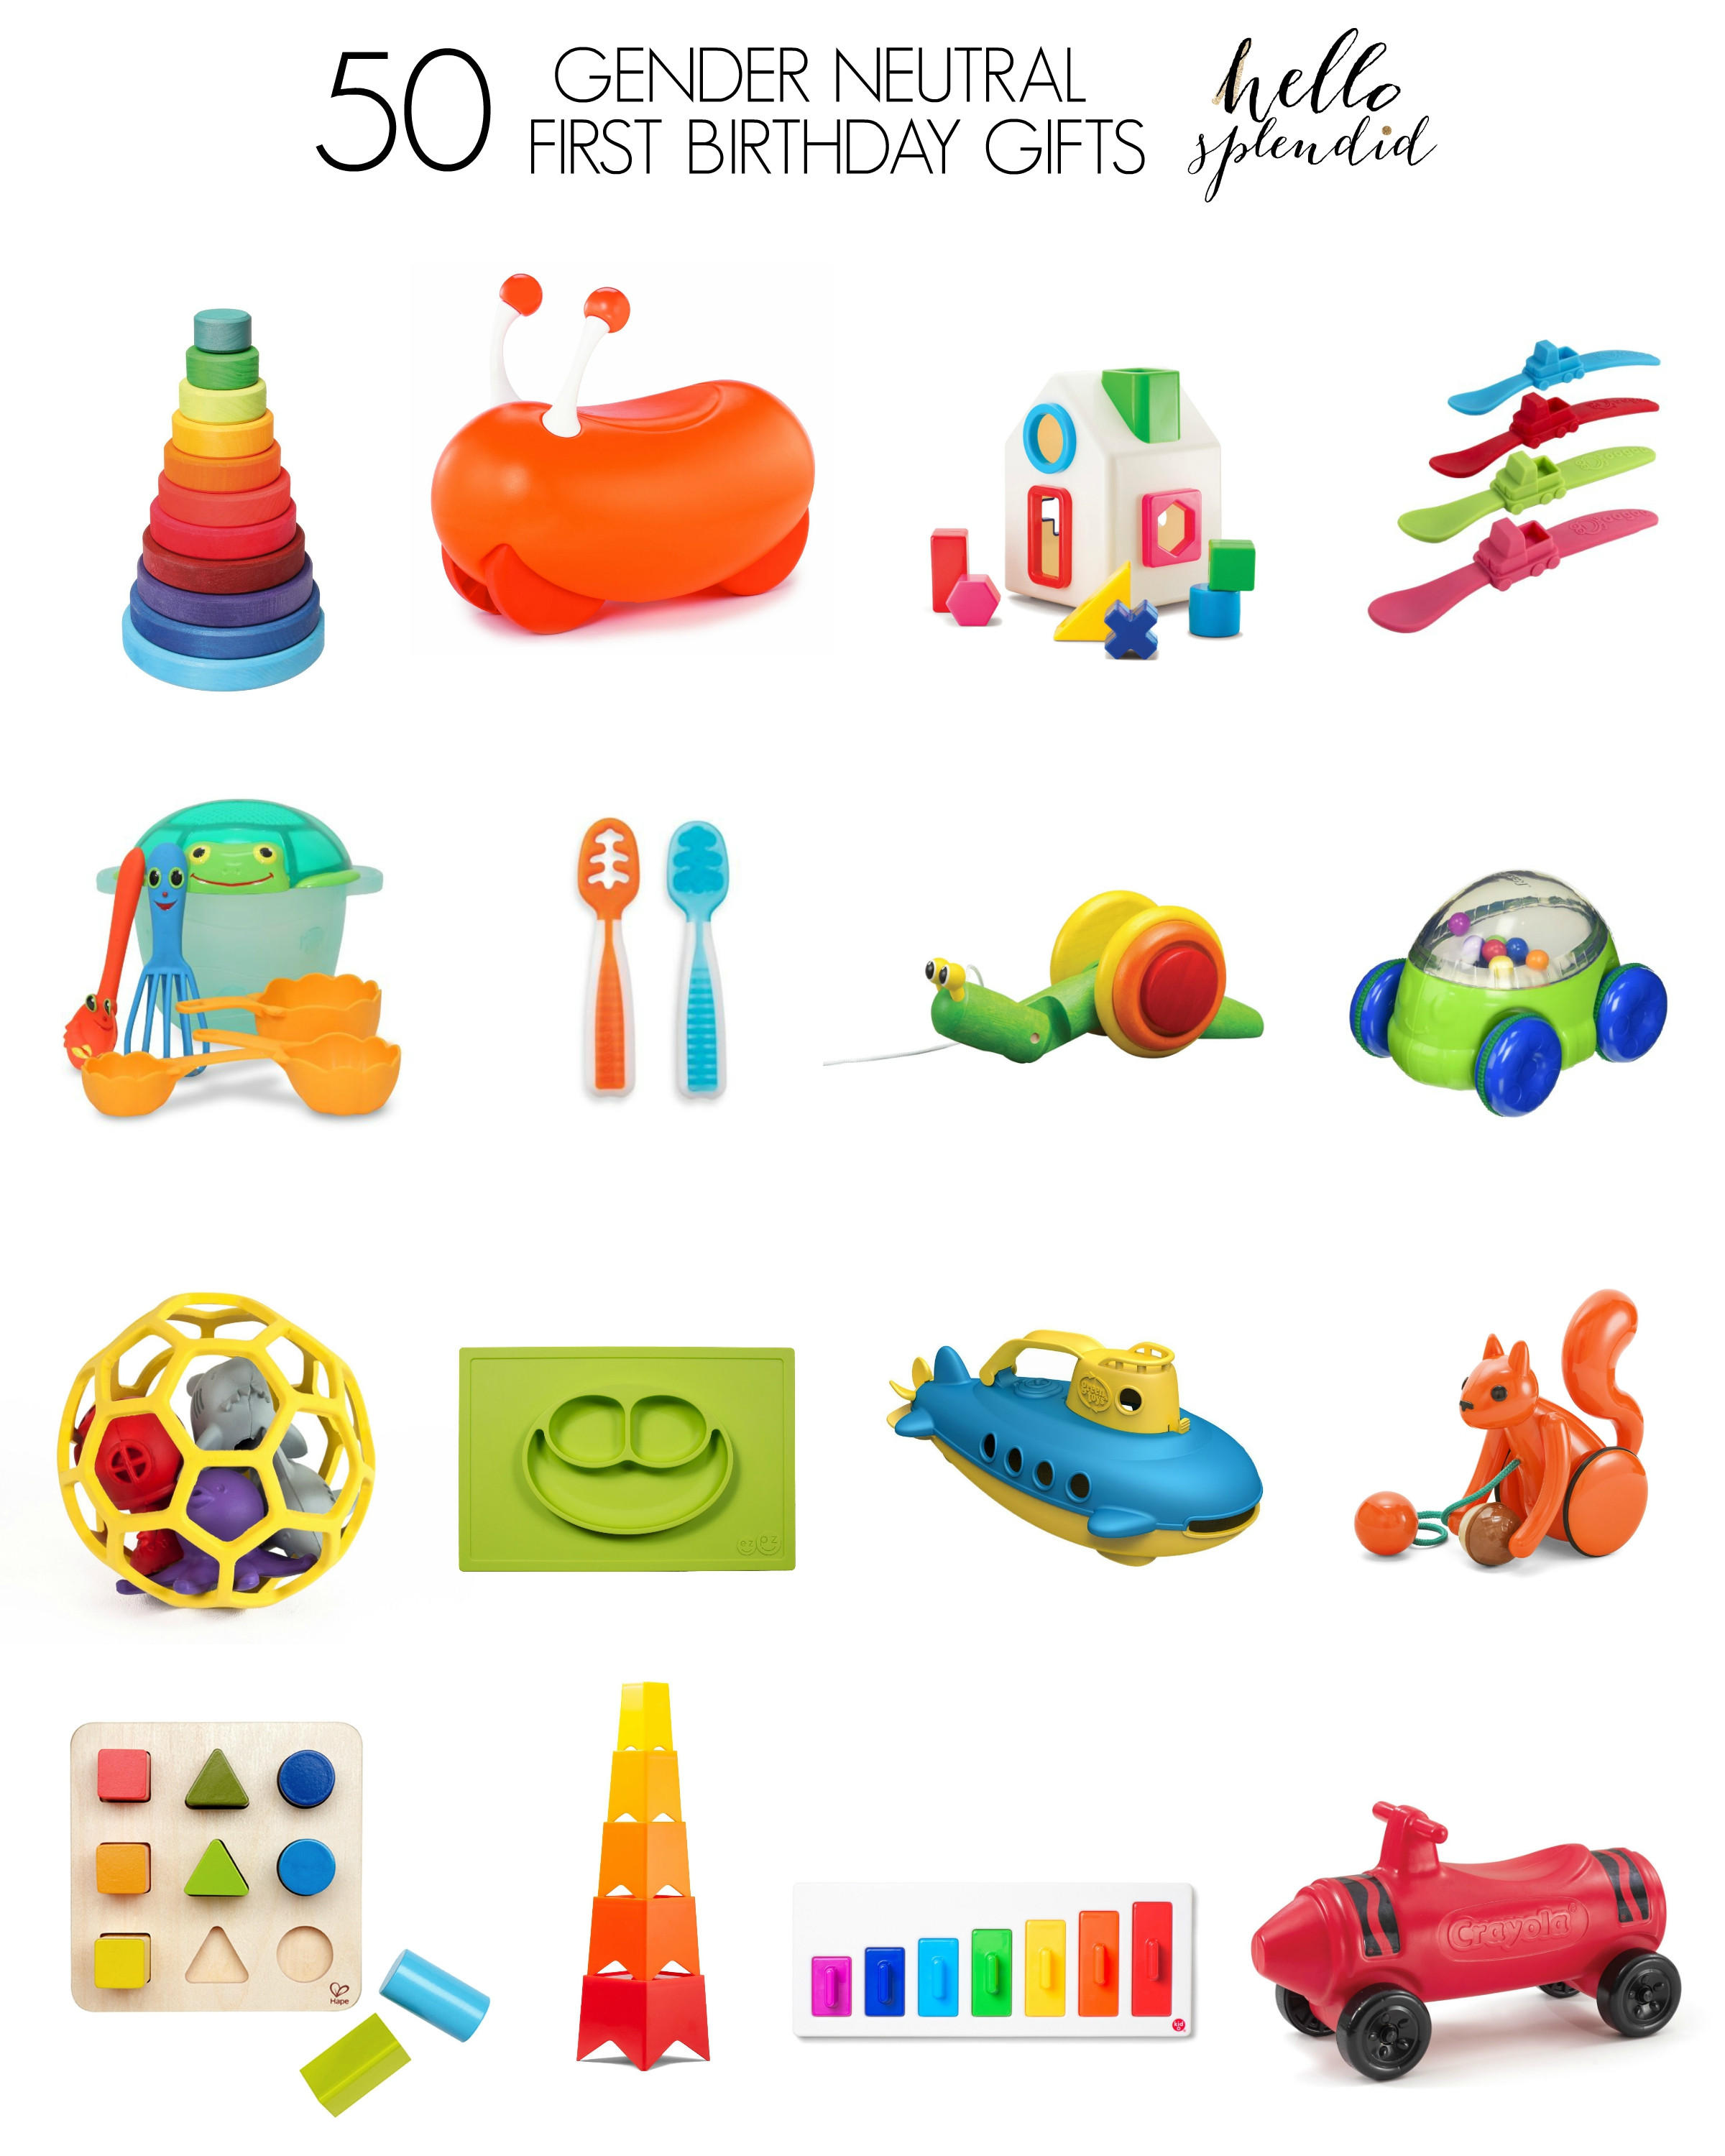 Best ideas about 1st Birthday Gift Ideas For Boys . Save or Pin 50 Gender Neutral First Birthday Gifts Hello Splendid Now.